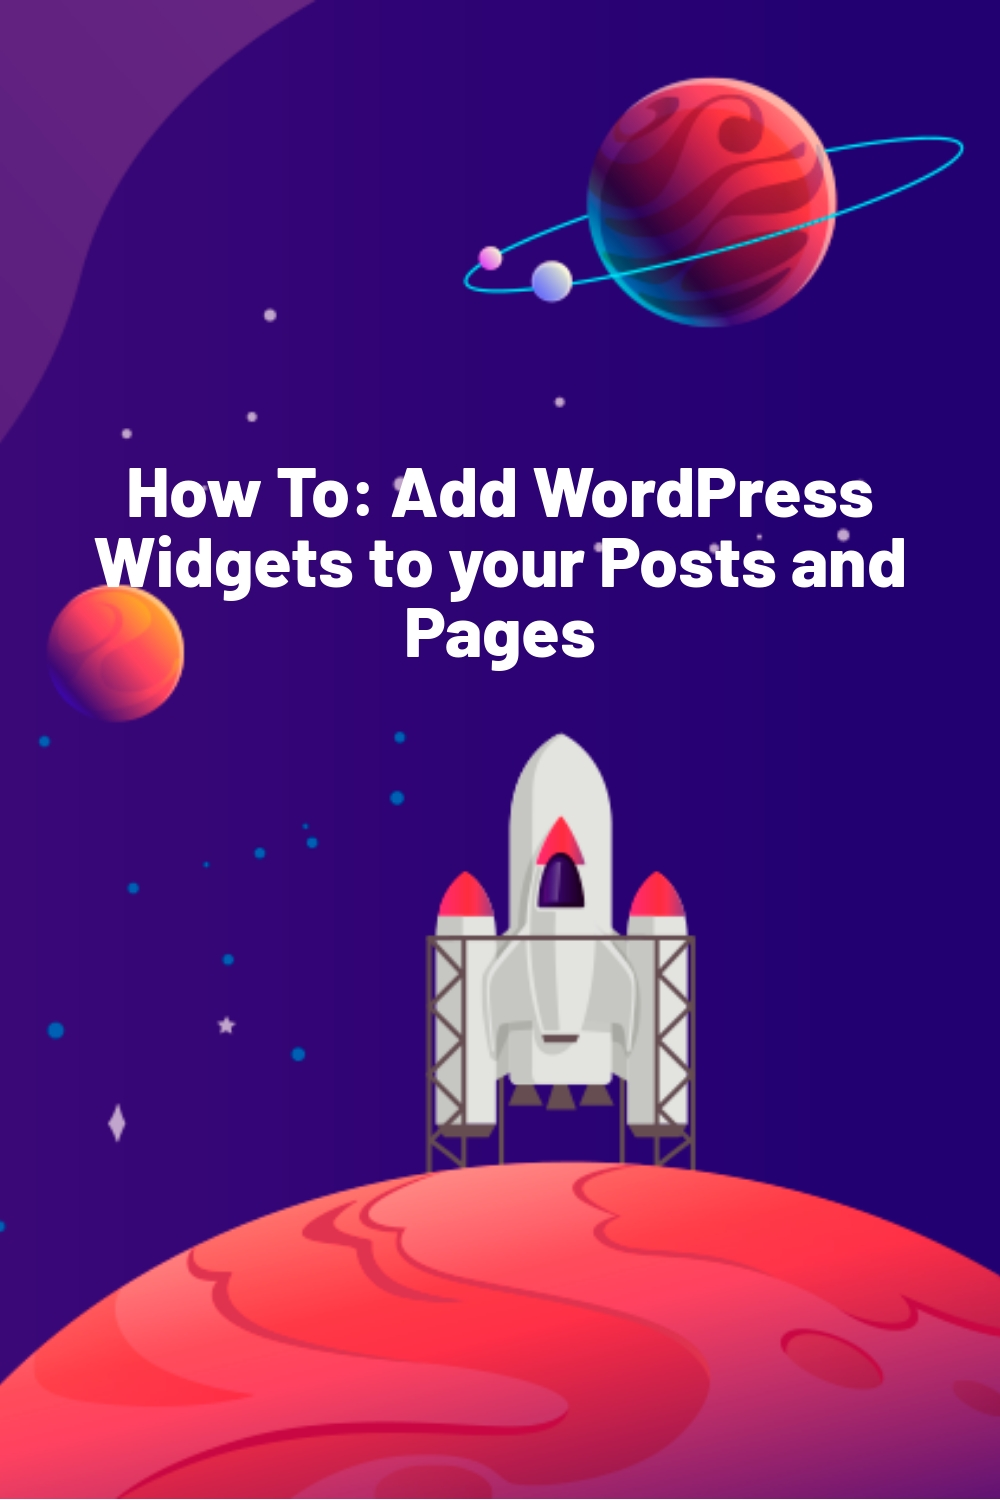 How To: Add WordPress Widgets to your Posts and Pages